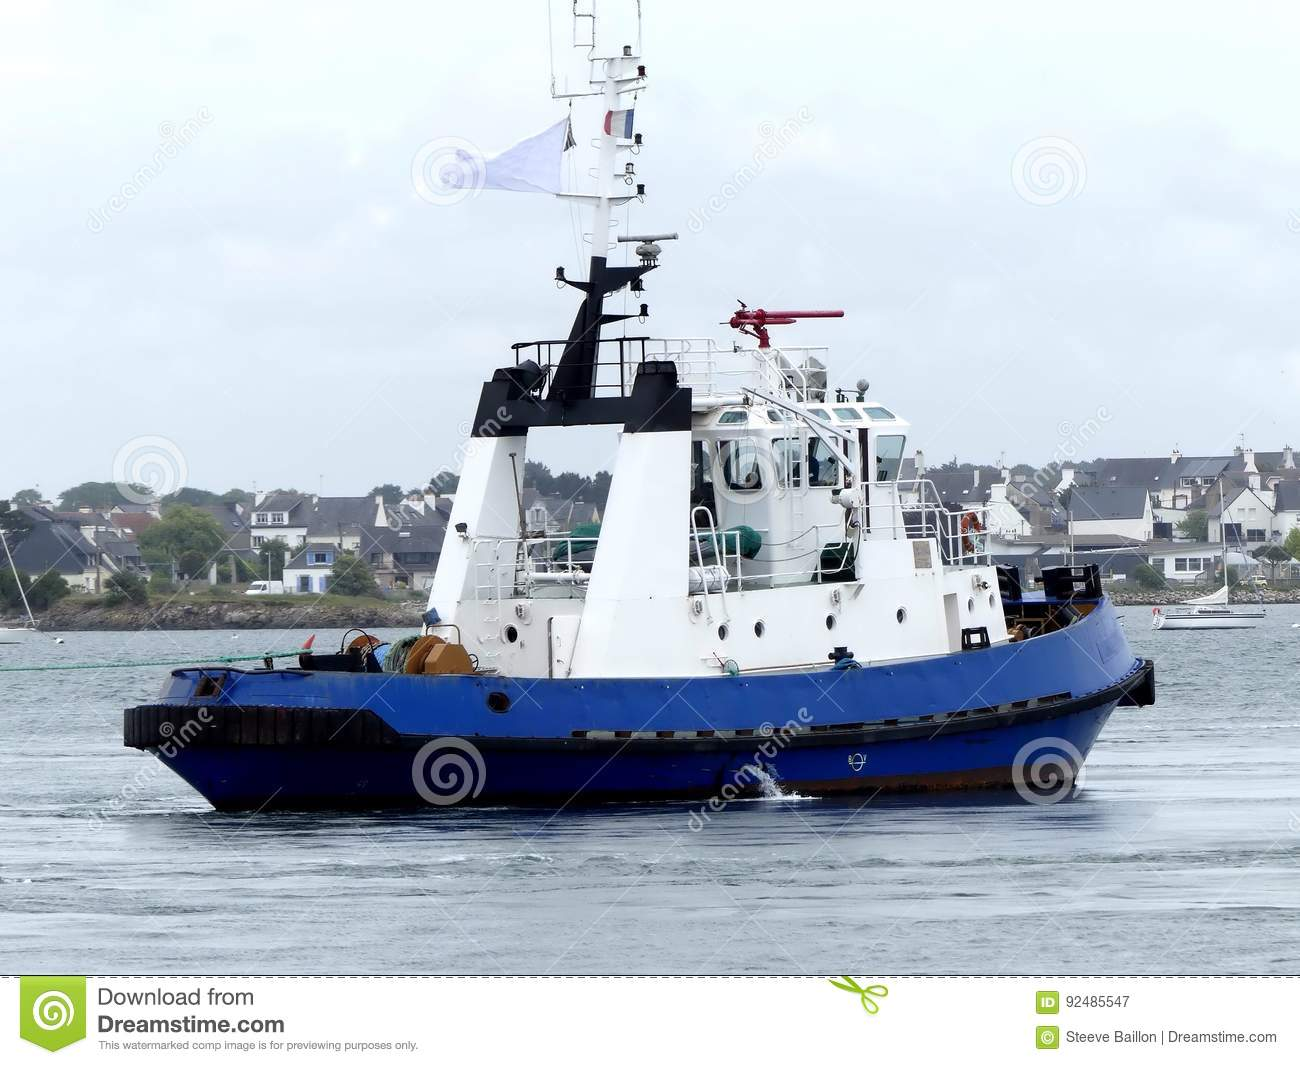 Tugboat in operations